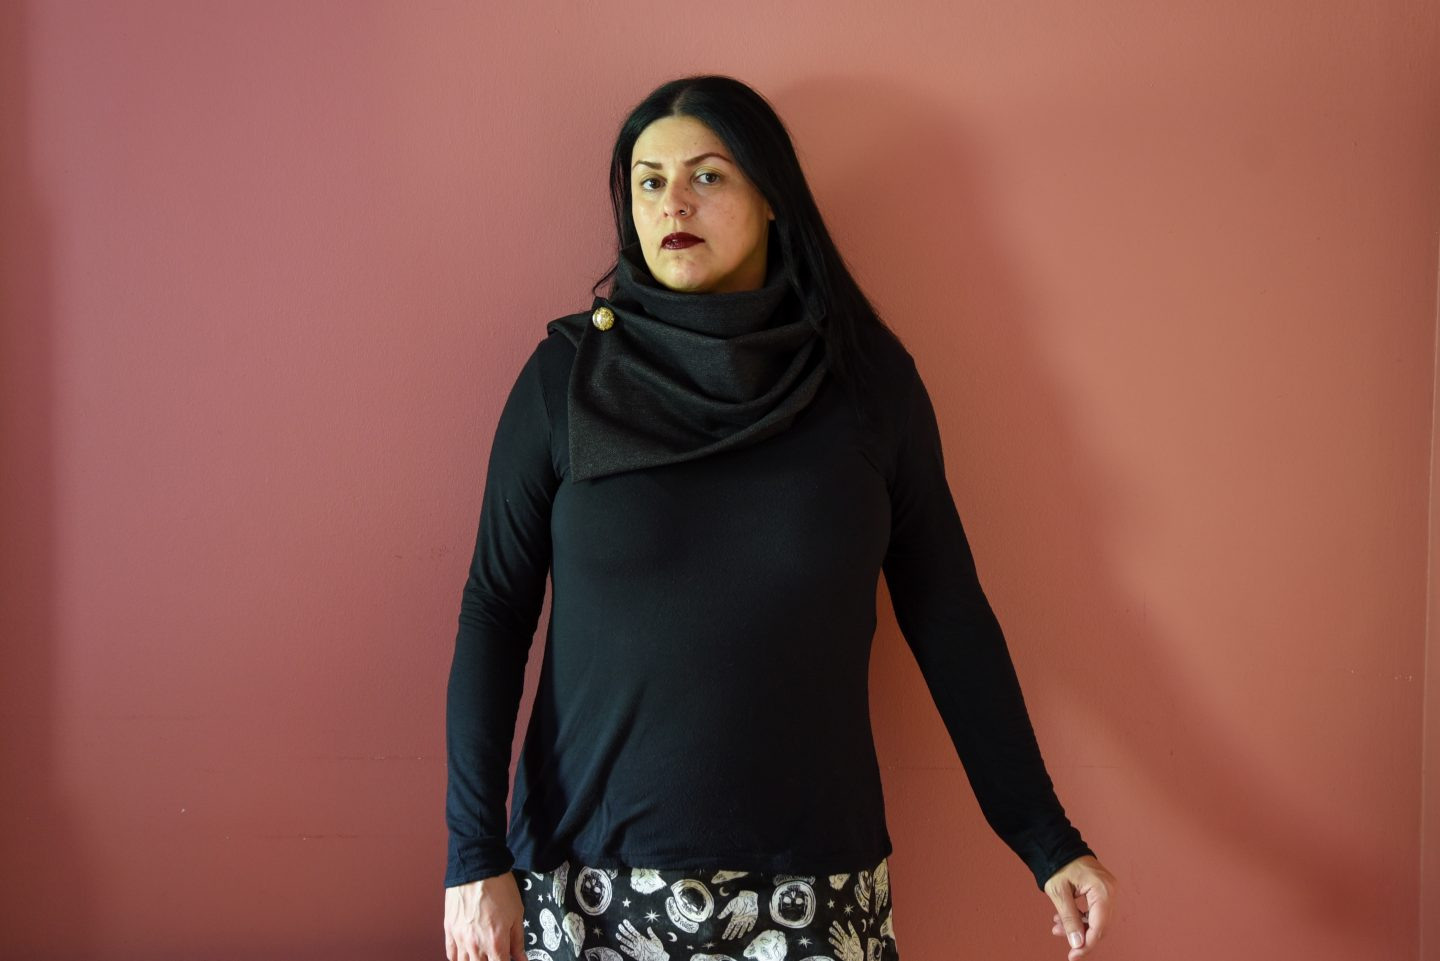 Image of a woman with long black hair and red lipstick wearing a dark gray cowl and black top standing in front of a pink wall